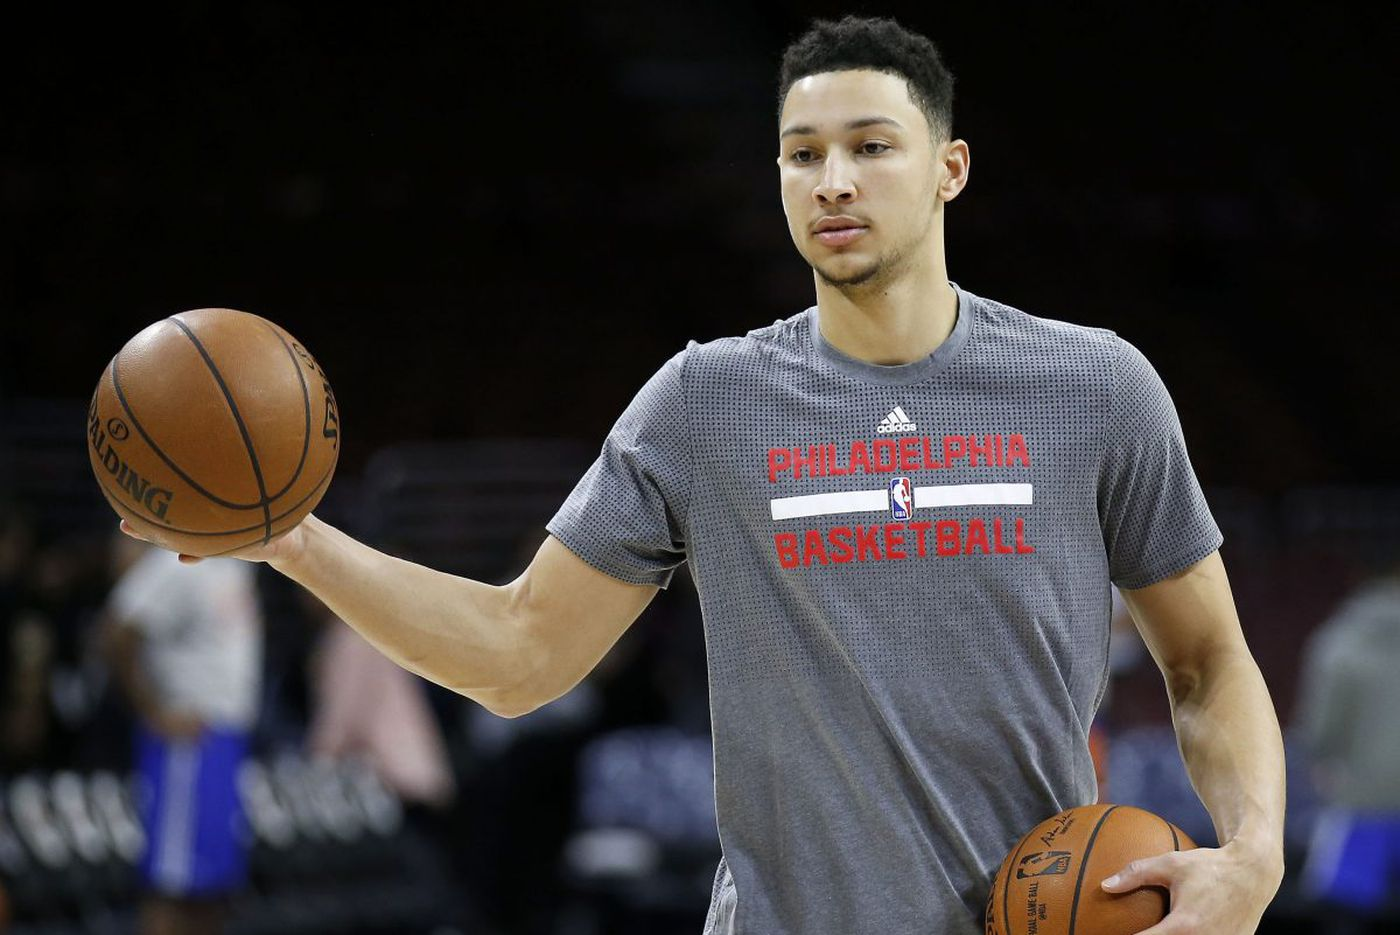 Sixers' Simmons: 'I'm a starting point guard'